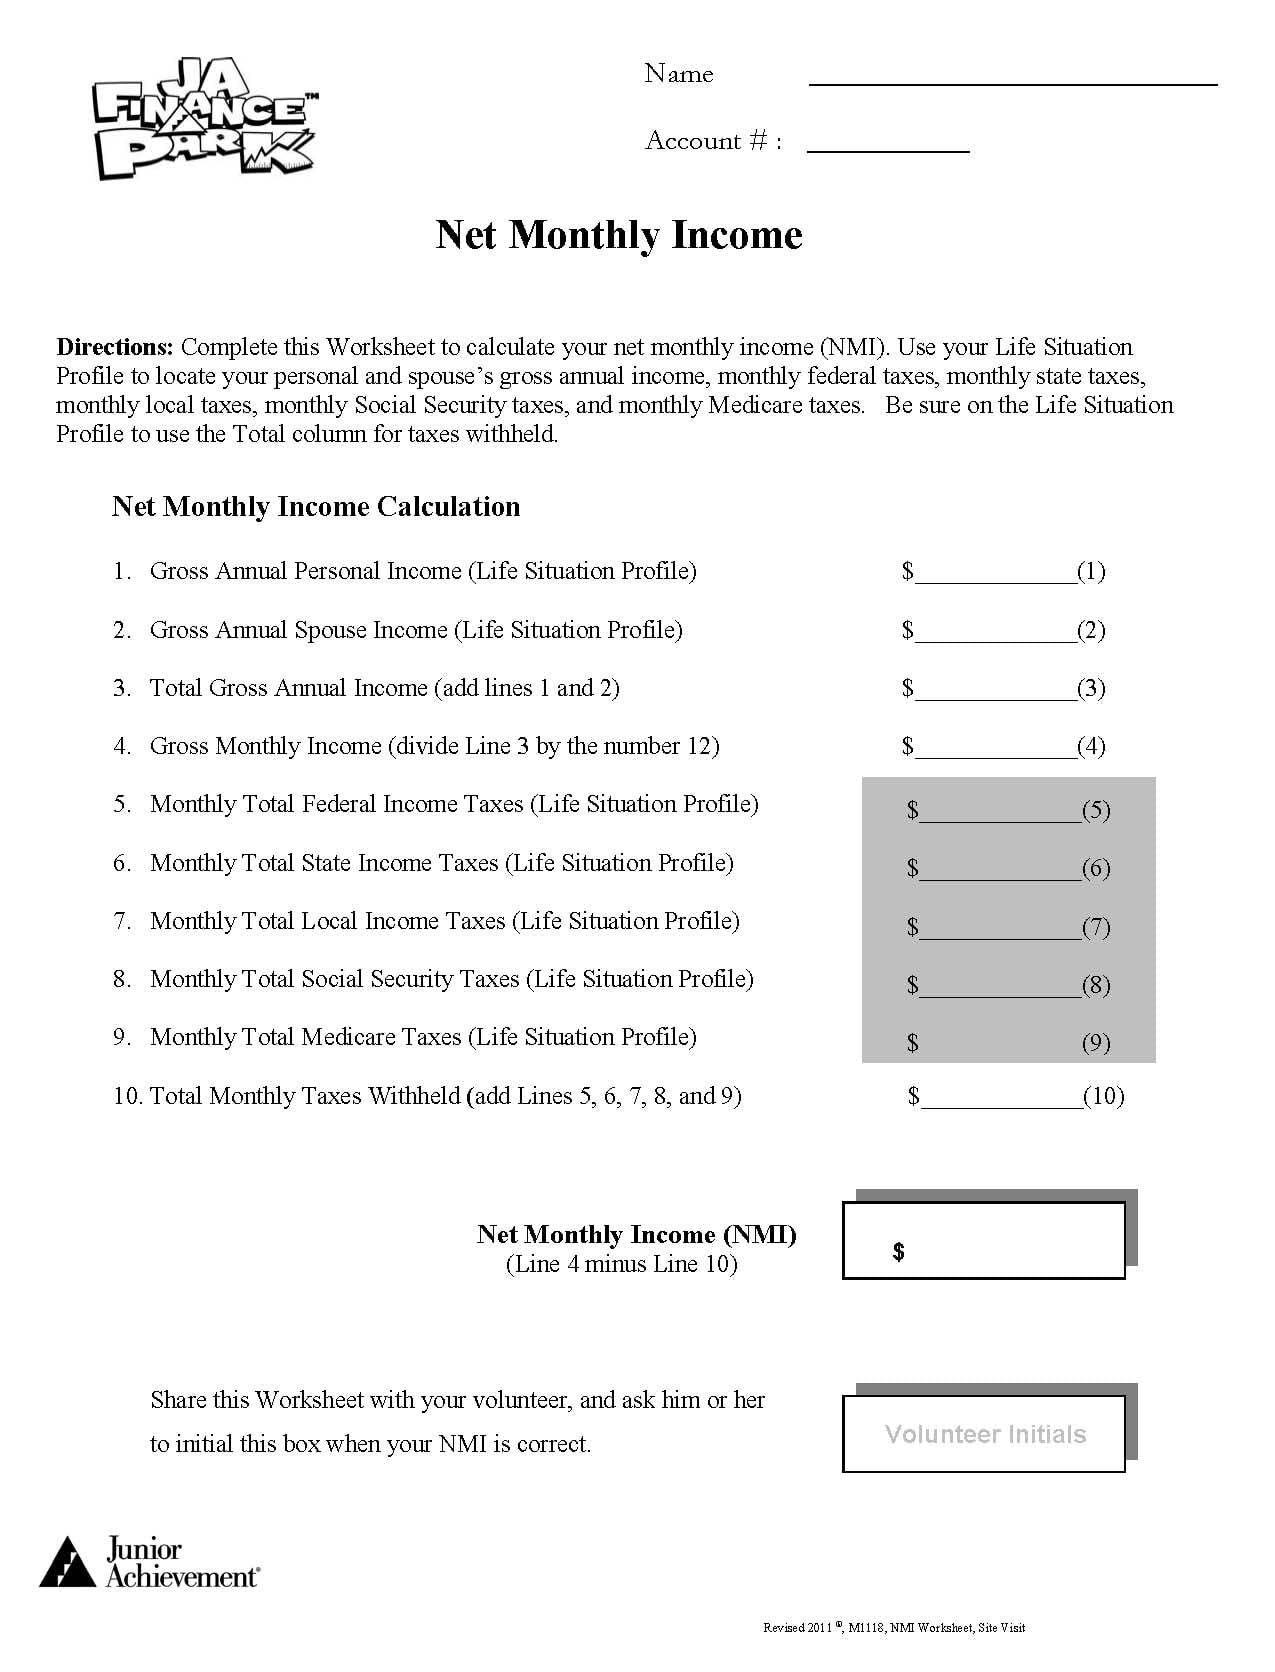 worksheet Worksheets For Students income tax worksheets for students worksheet challenge photos ja